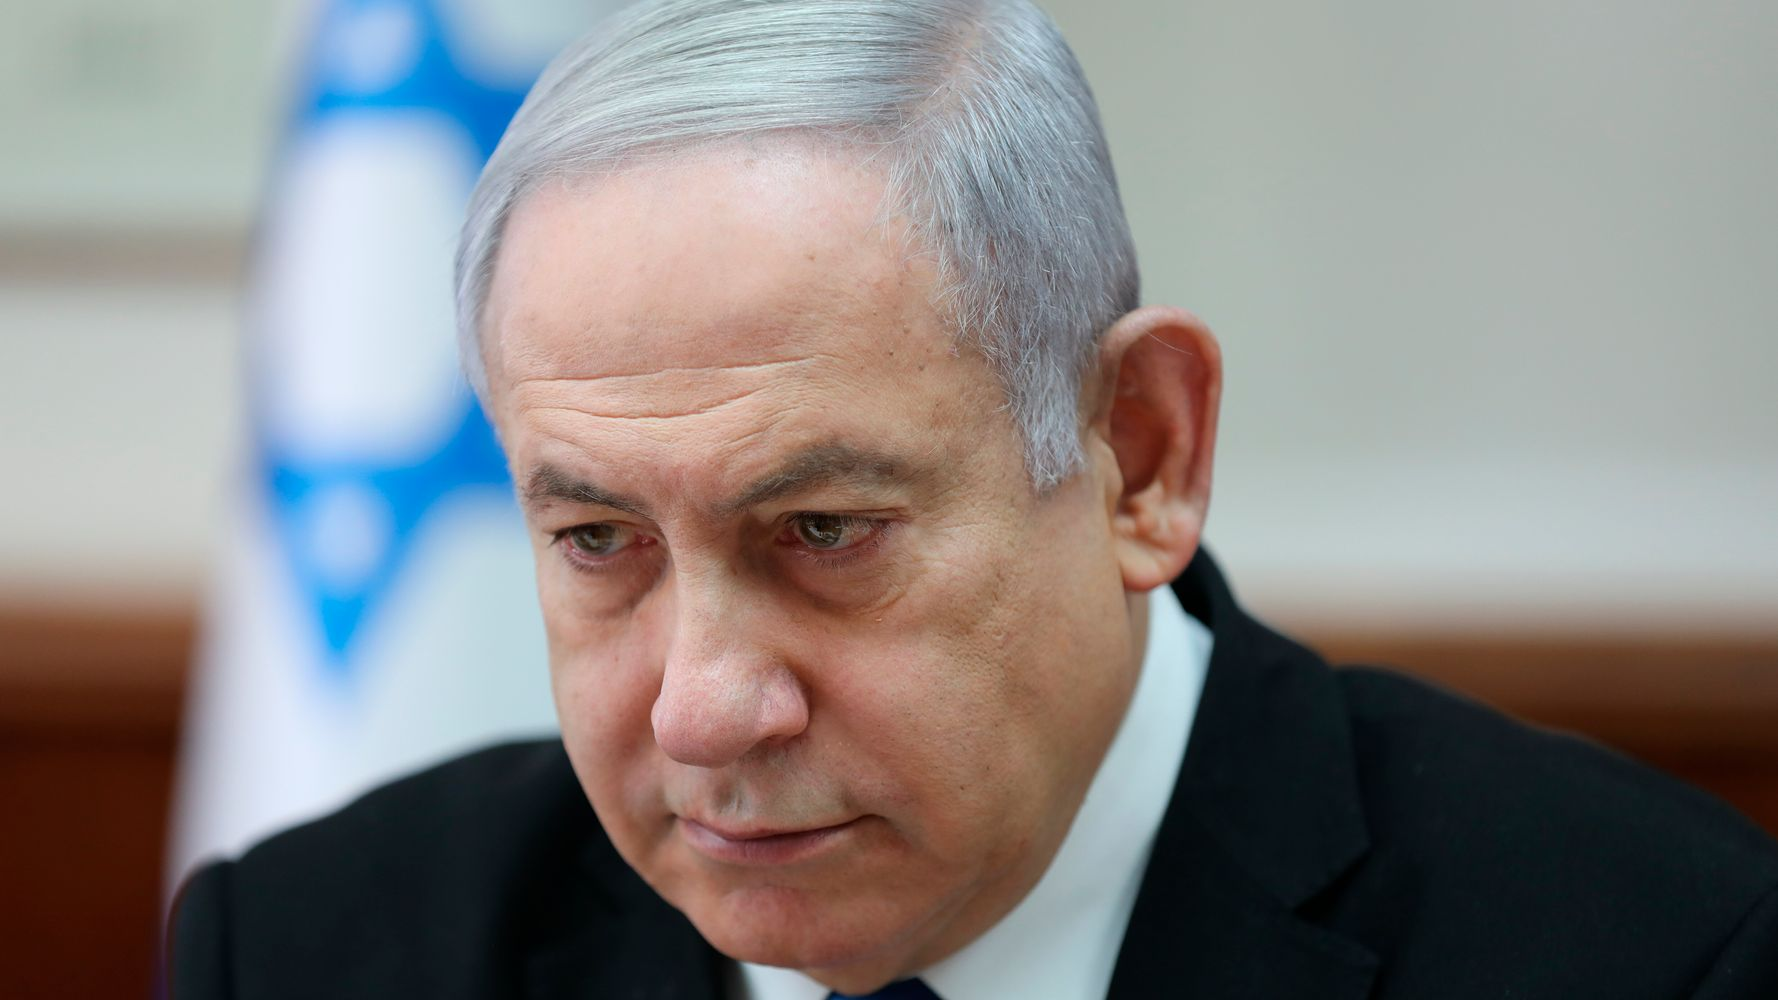 Westlake Legal Group 5df16e132100002d0734fb9a Israeli Parliament Votes To Dissolve, Readies For Third Election In A Year